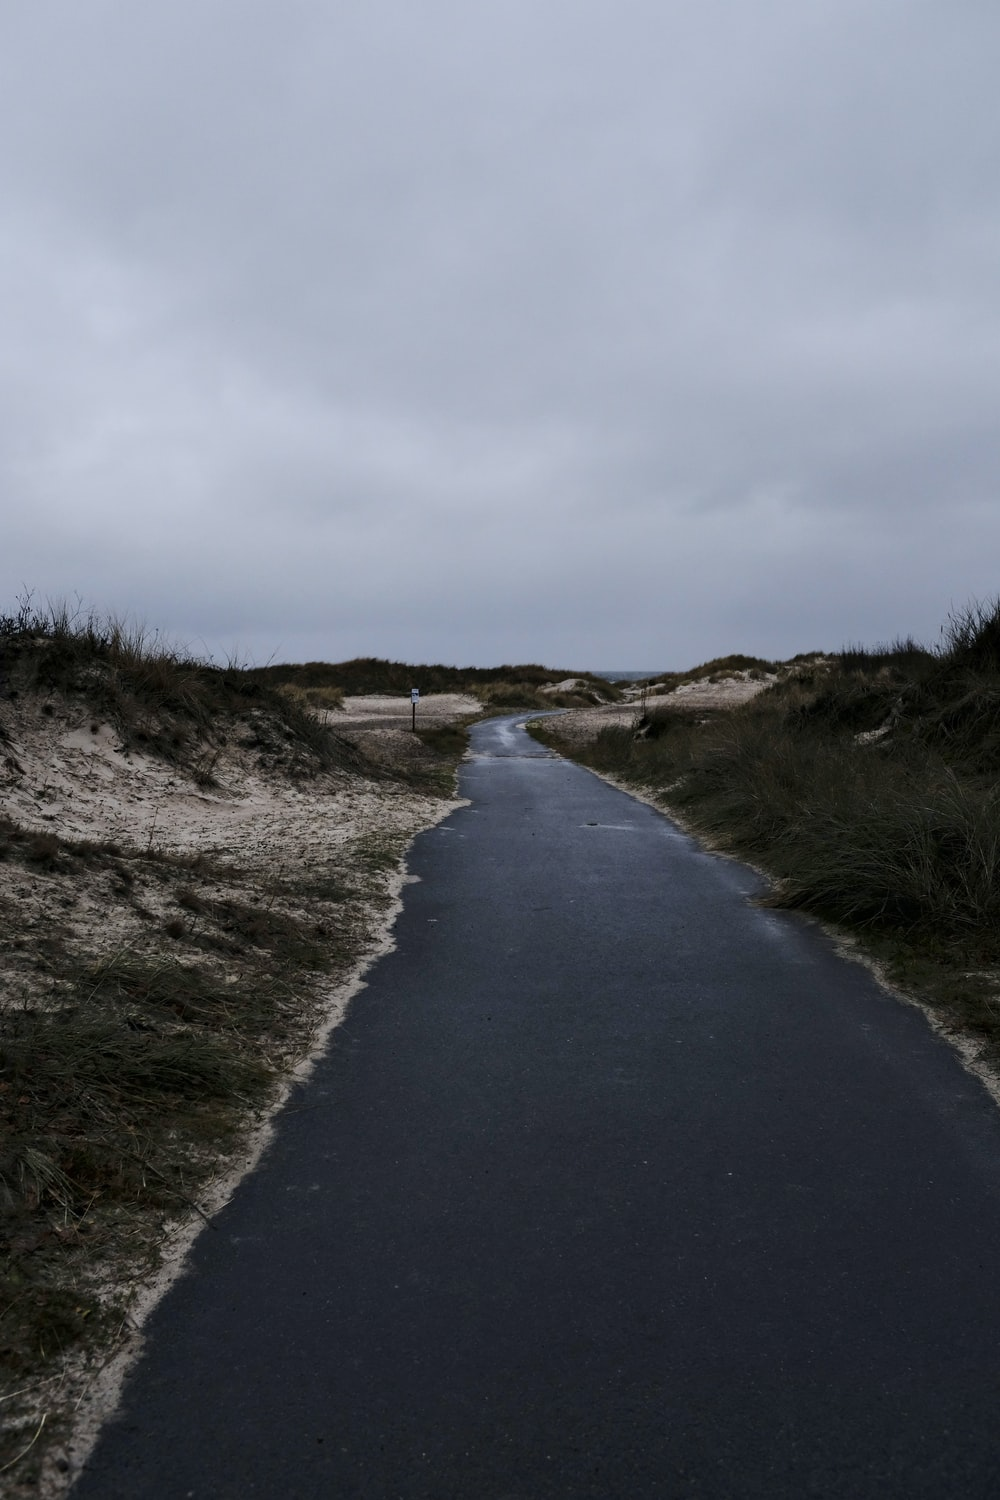 empty paved road under white sky